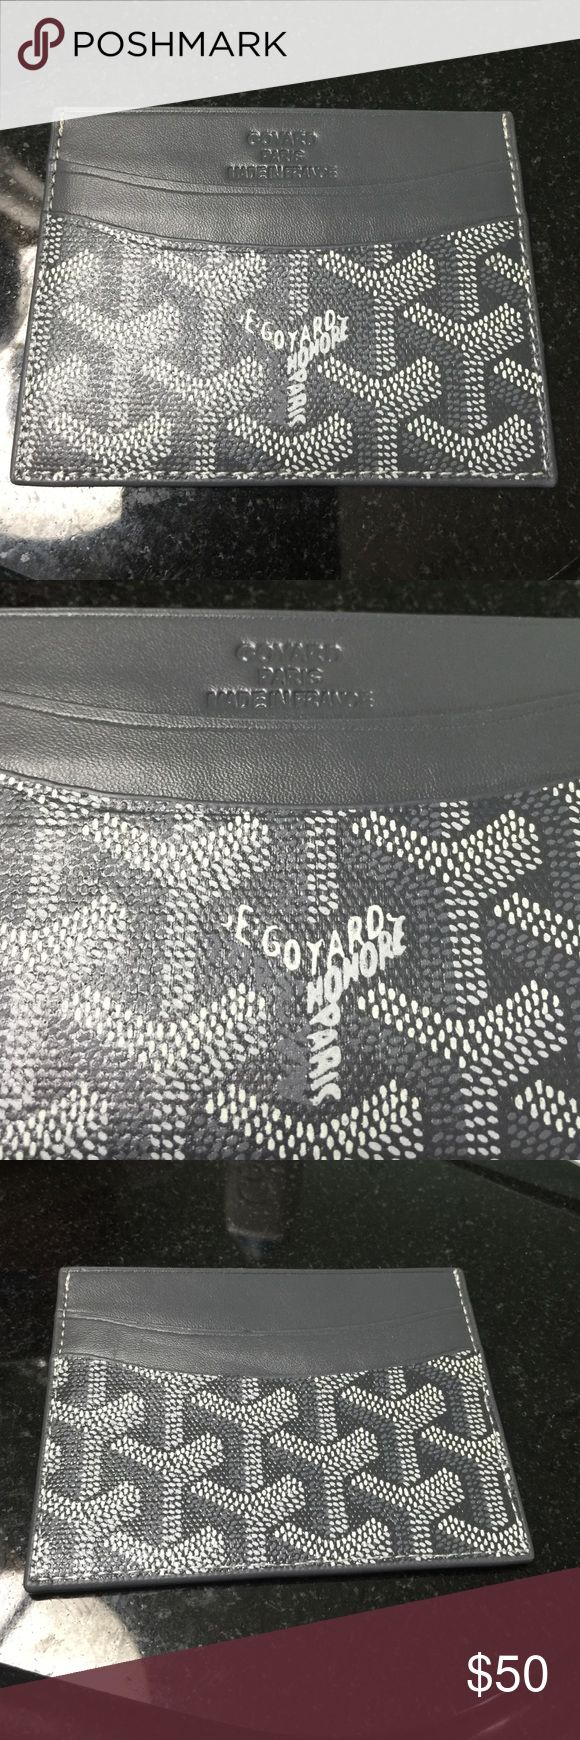 Gray goyard cardholder wallet Price reflects. Never used and great quality Bags Wallets